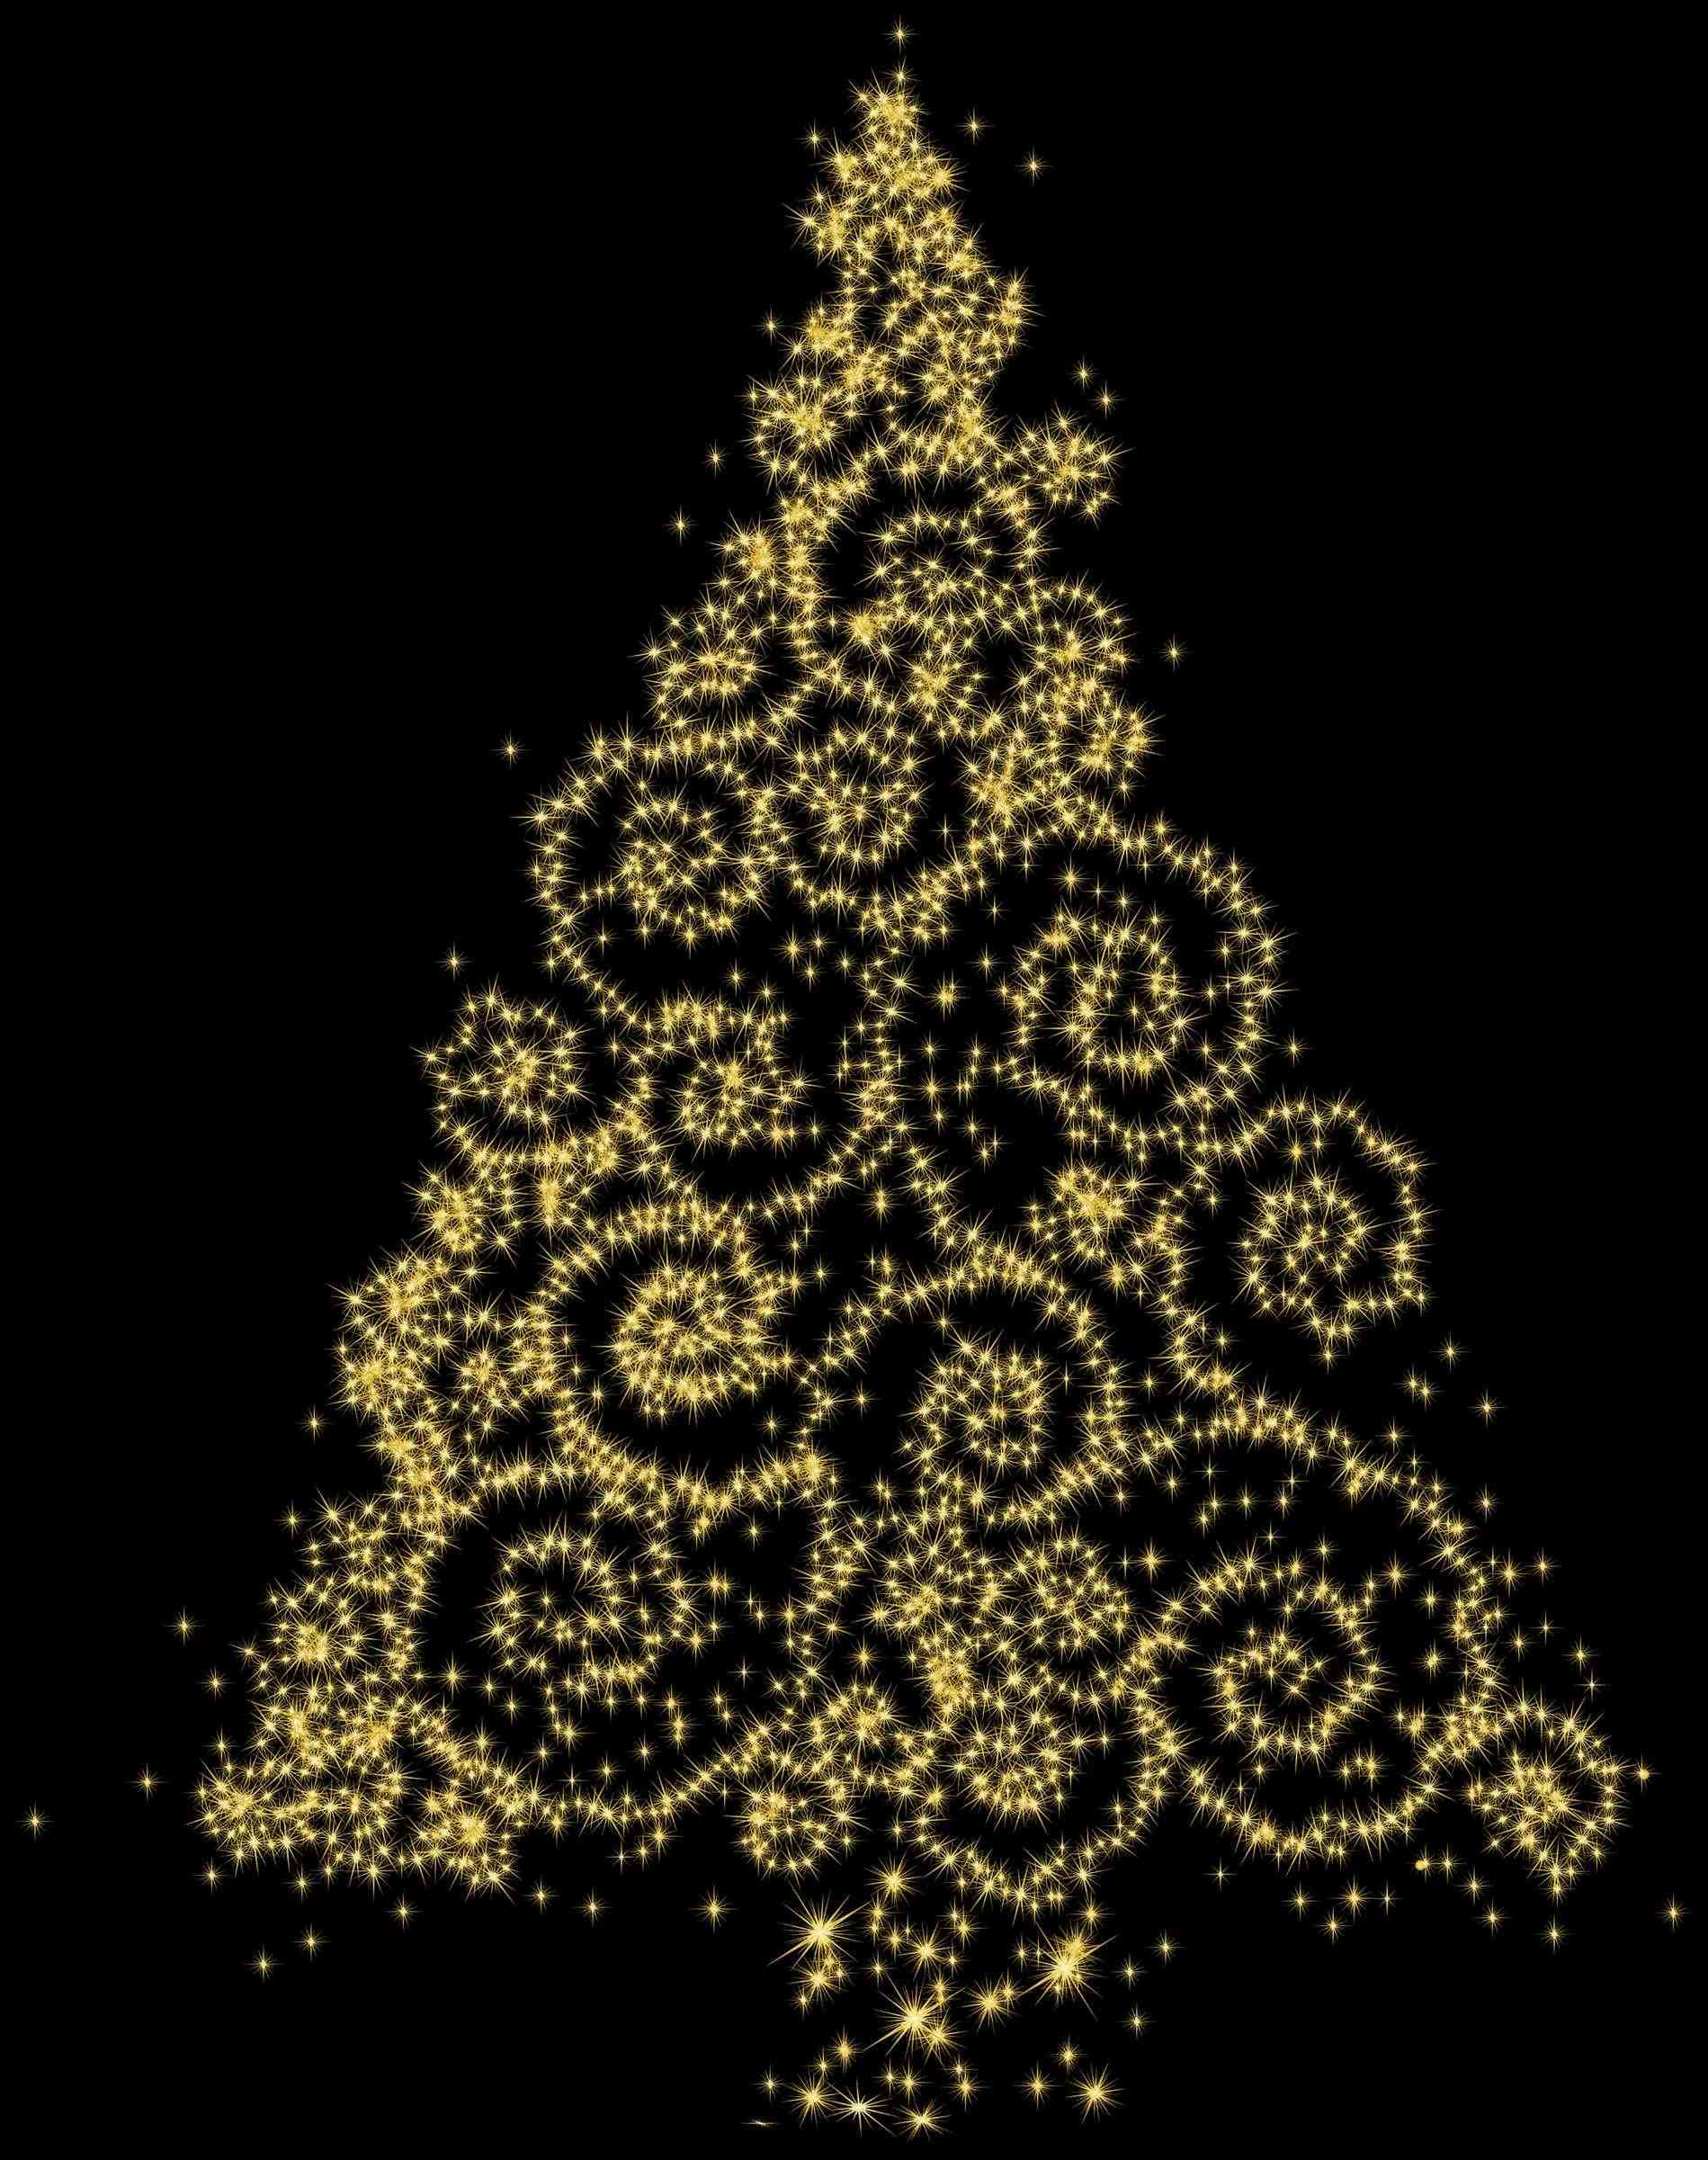 New Post Png Christmas Tree Interesting Visit Xmastsite